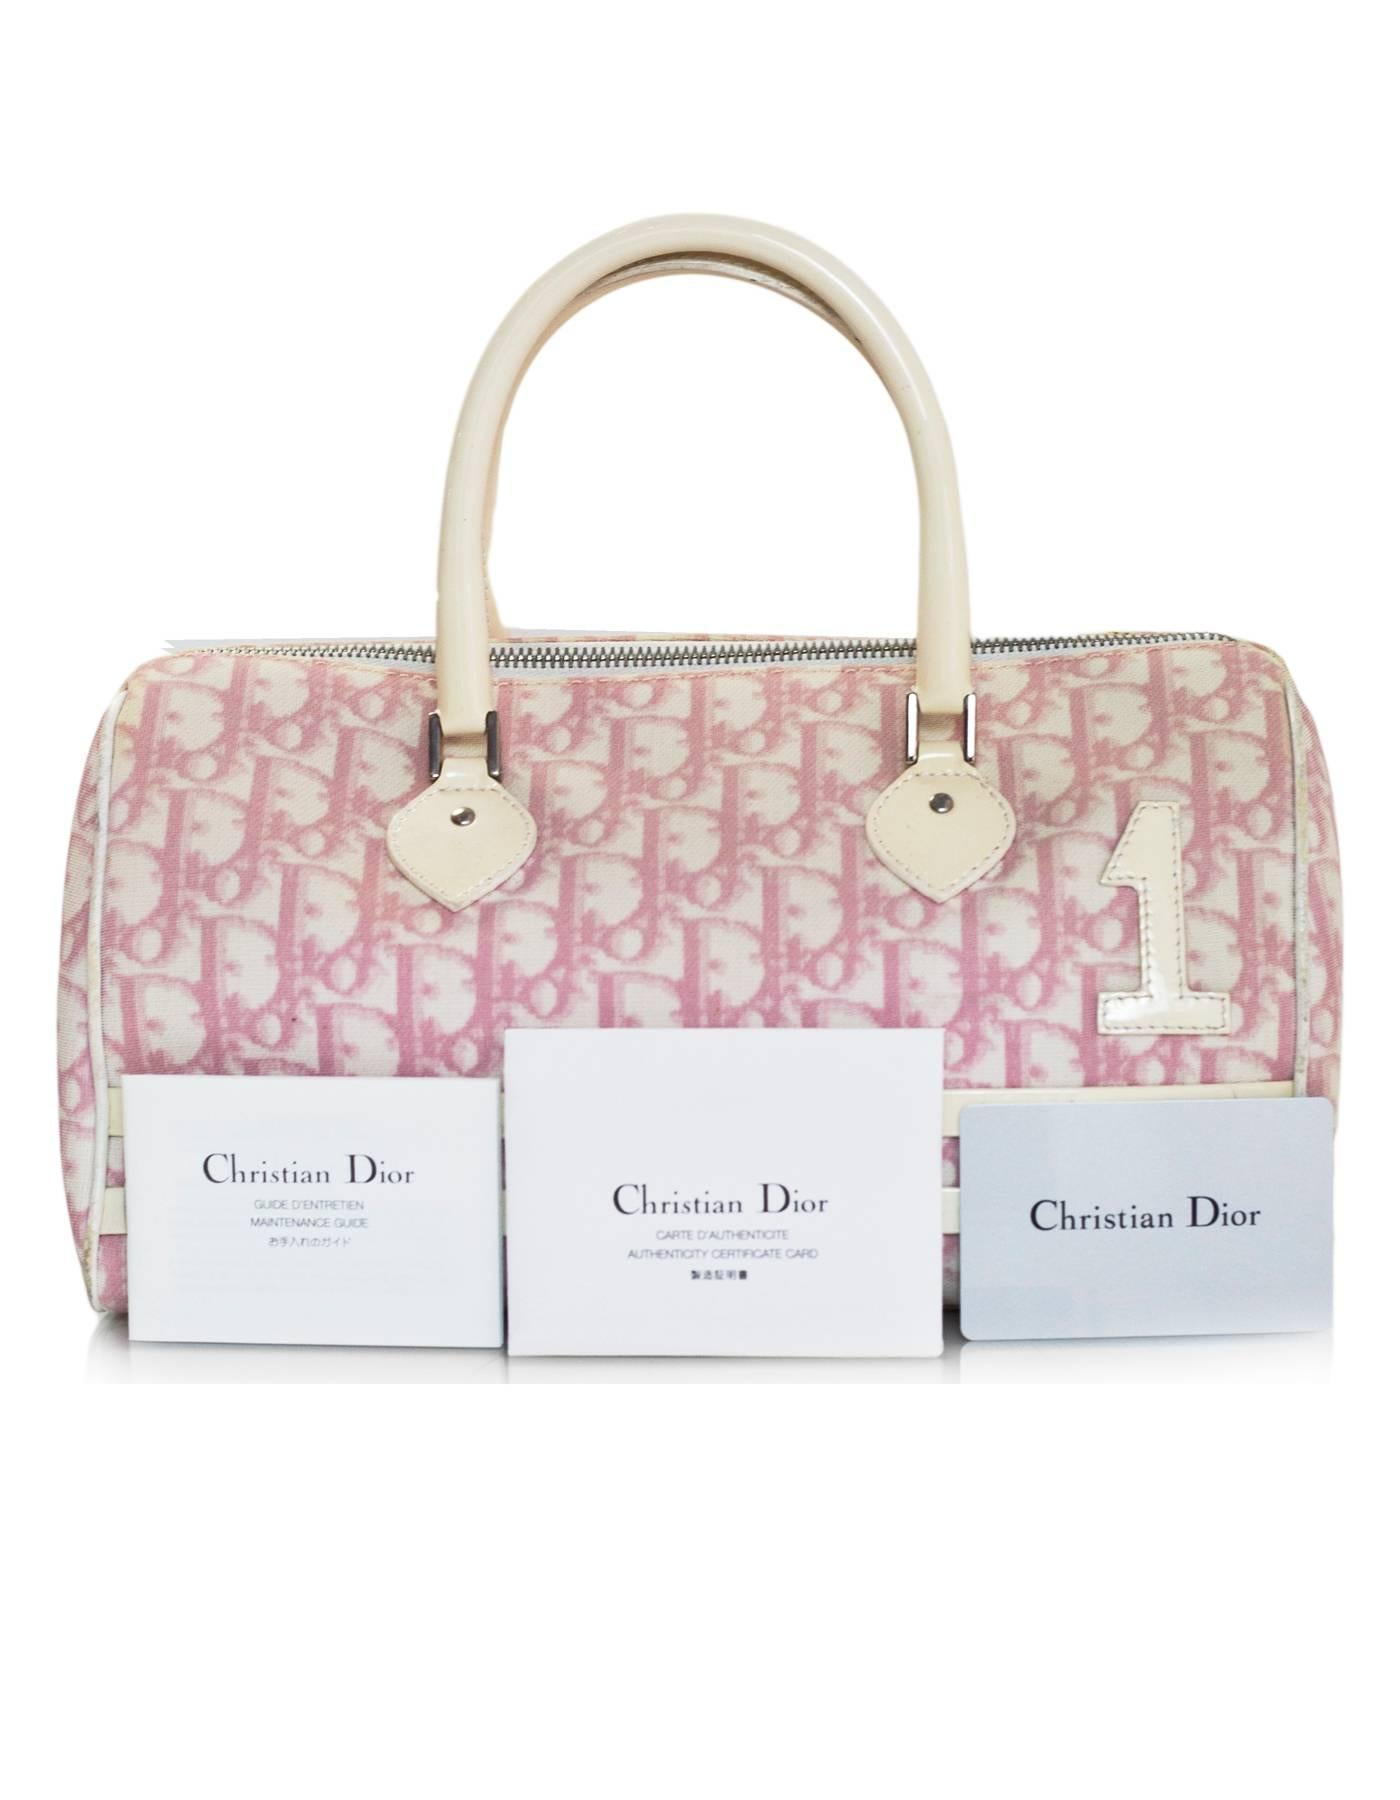 8d7d358a0699 Christian Dior Vintage Pink and White Diorissimo Monogram Boston Bag For  Sale at 1stdibs